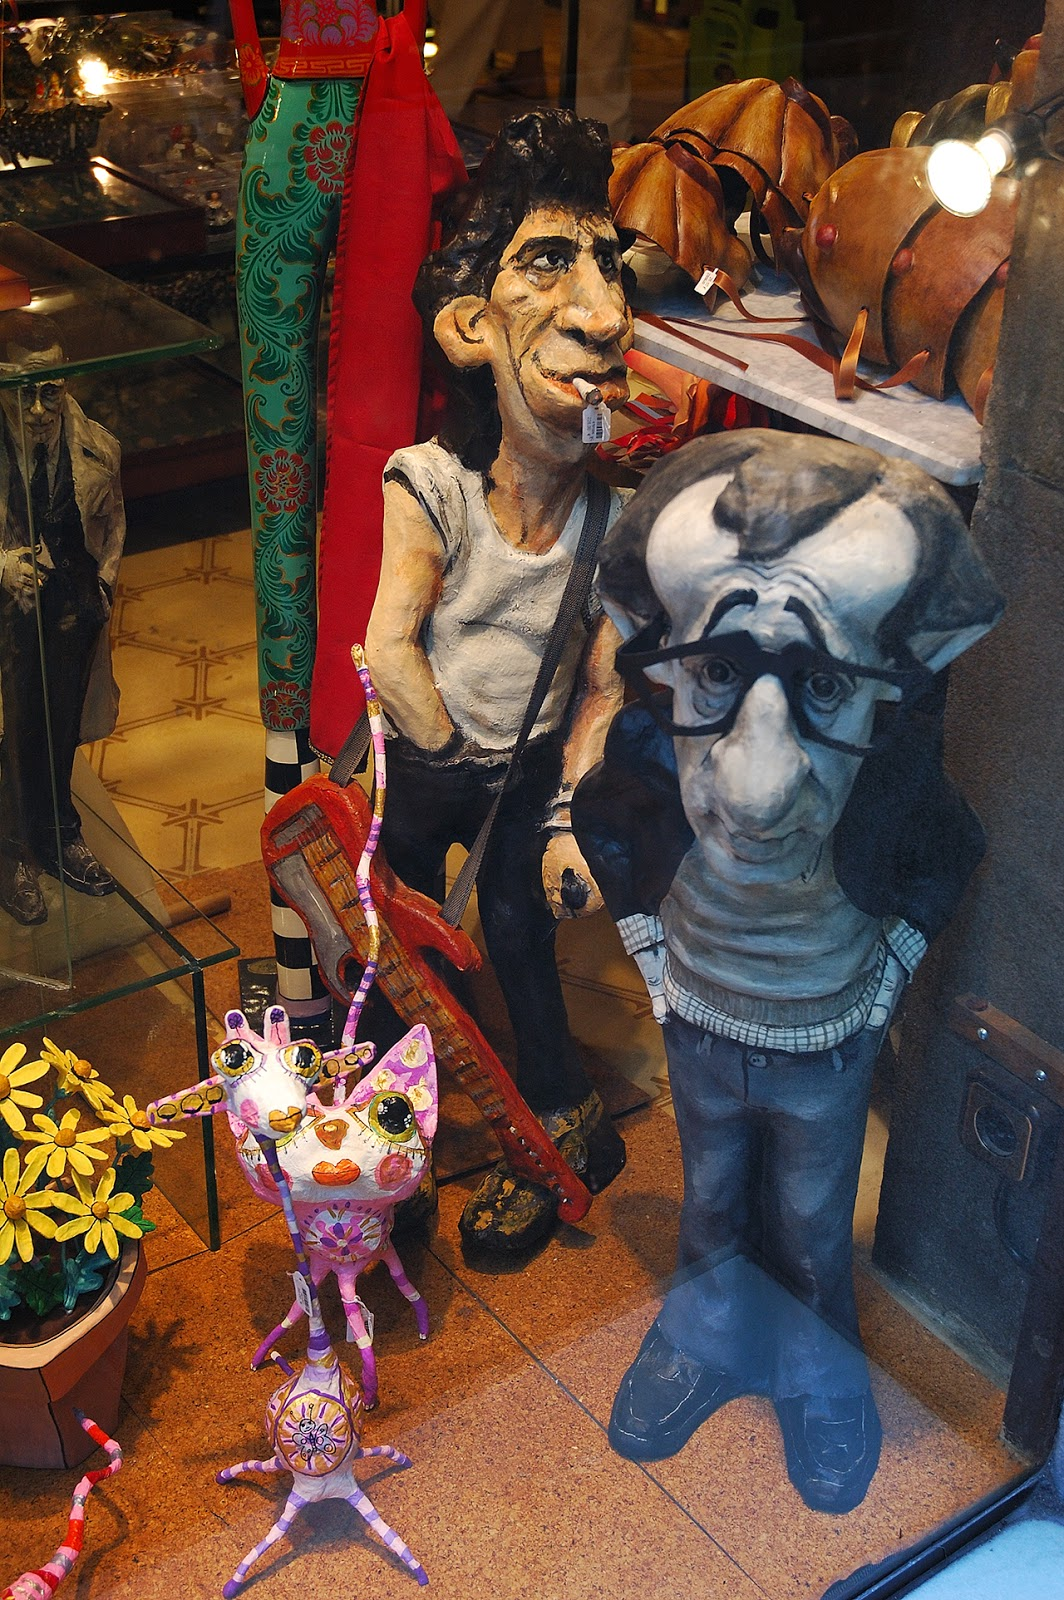 Woody Allen and Keith Richards in Papier mache, Barcelona store